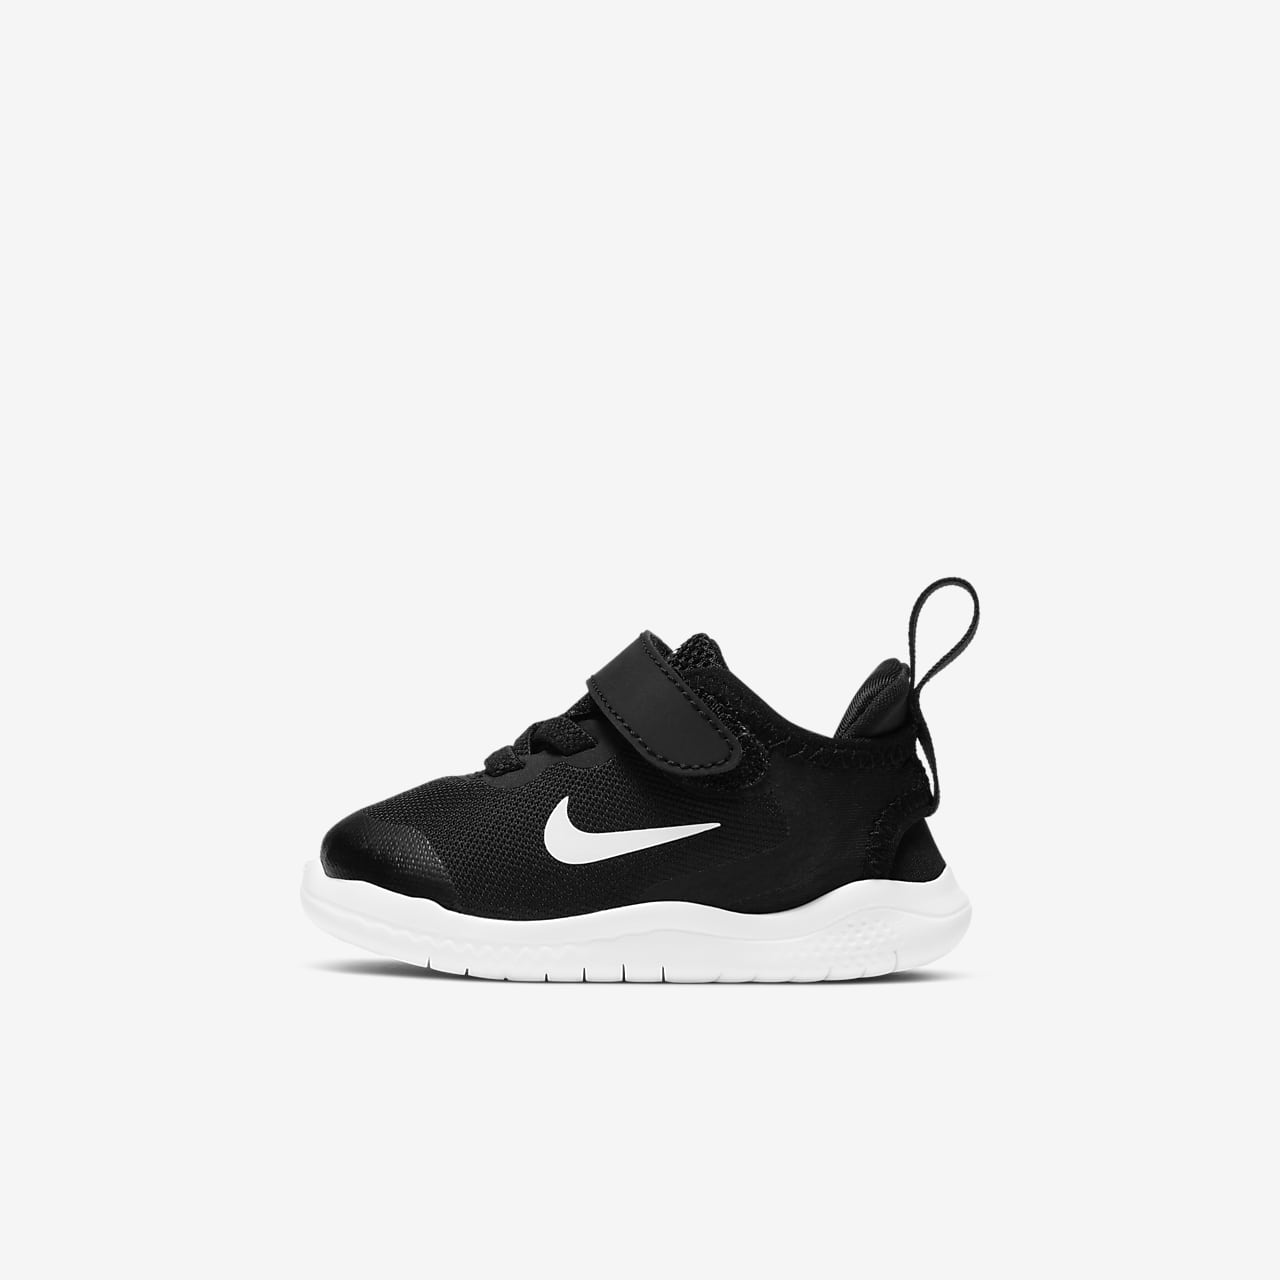 c14680e8c990 ... official nike free rn 2018 baby toddler shoe 88cdf ce275